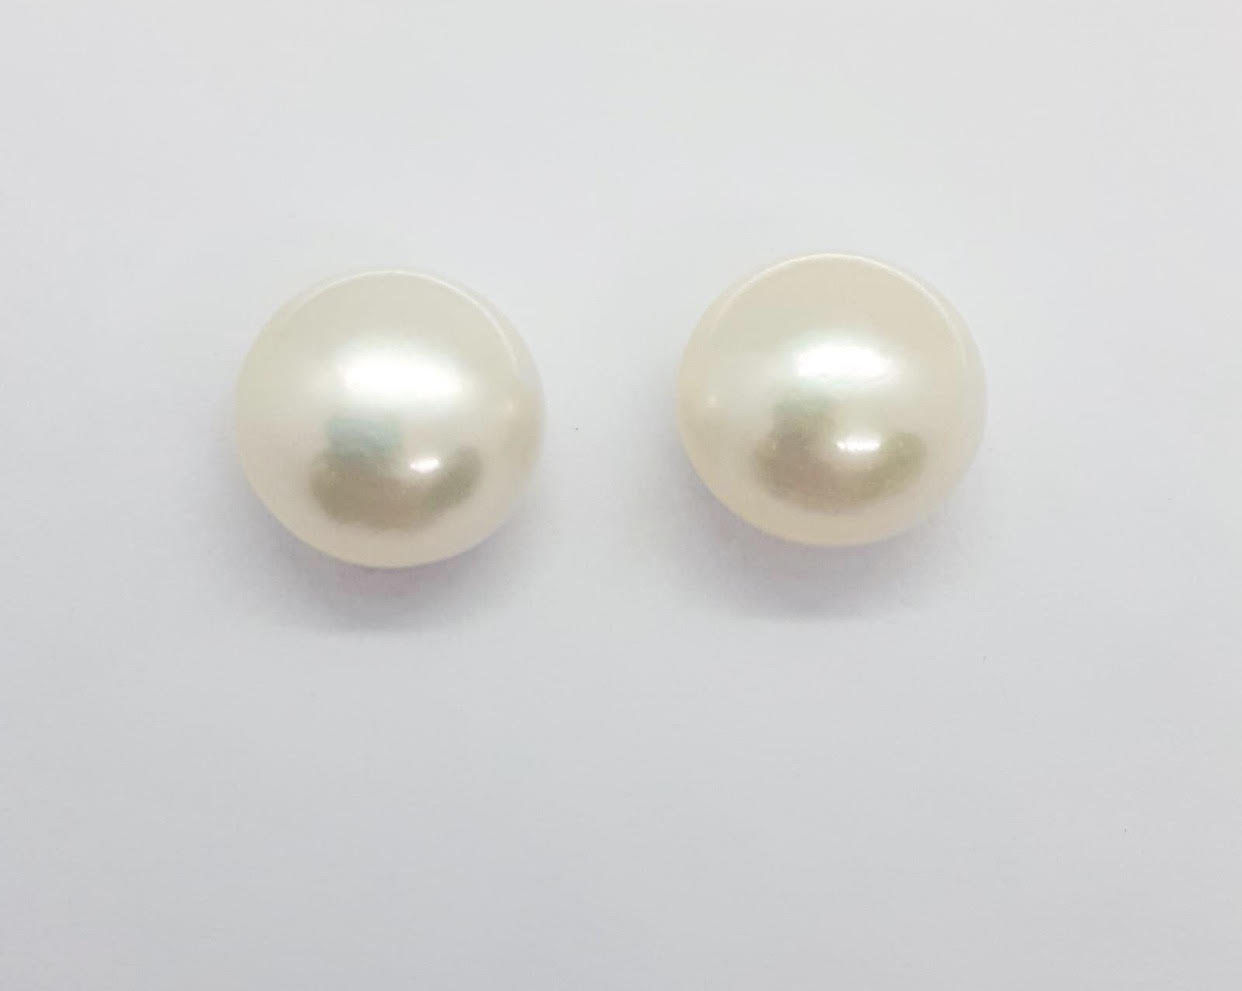 Sensi joyas jewellery Granada silver engagementGOLD AND PEARL EARRINGS